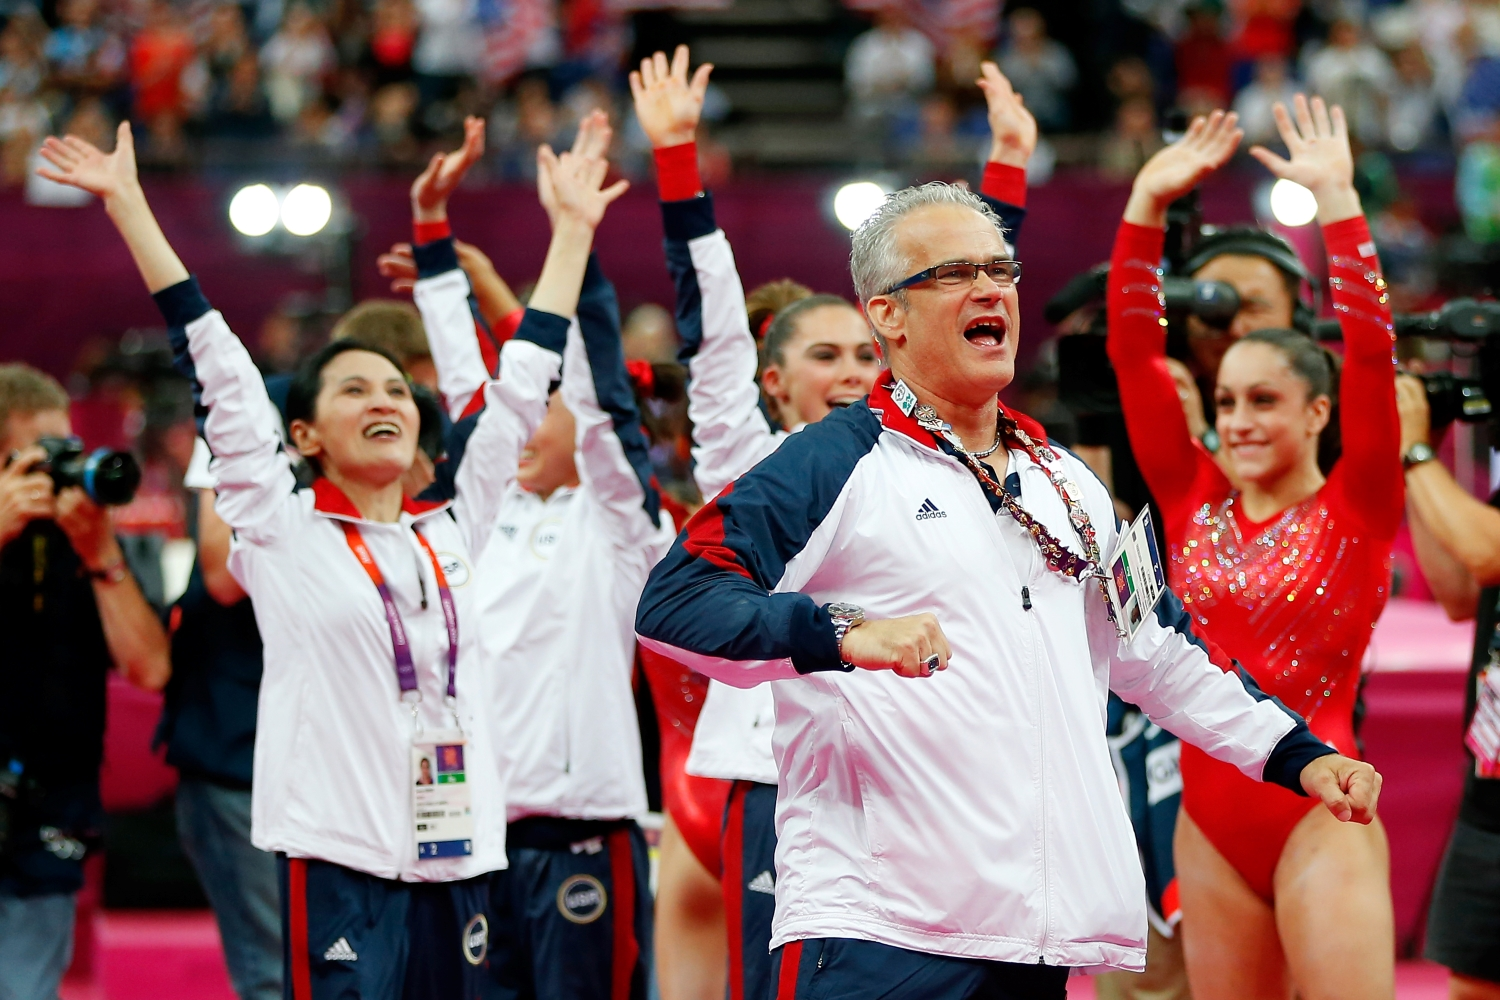 United States women's gymnastics coach John Geddert celebrates at the London 2012 Olympic Games.